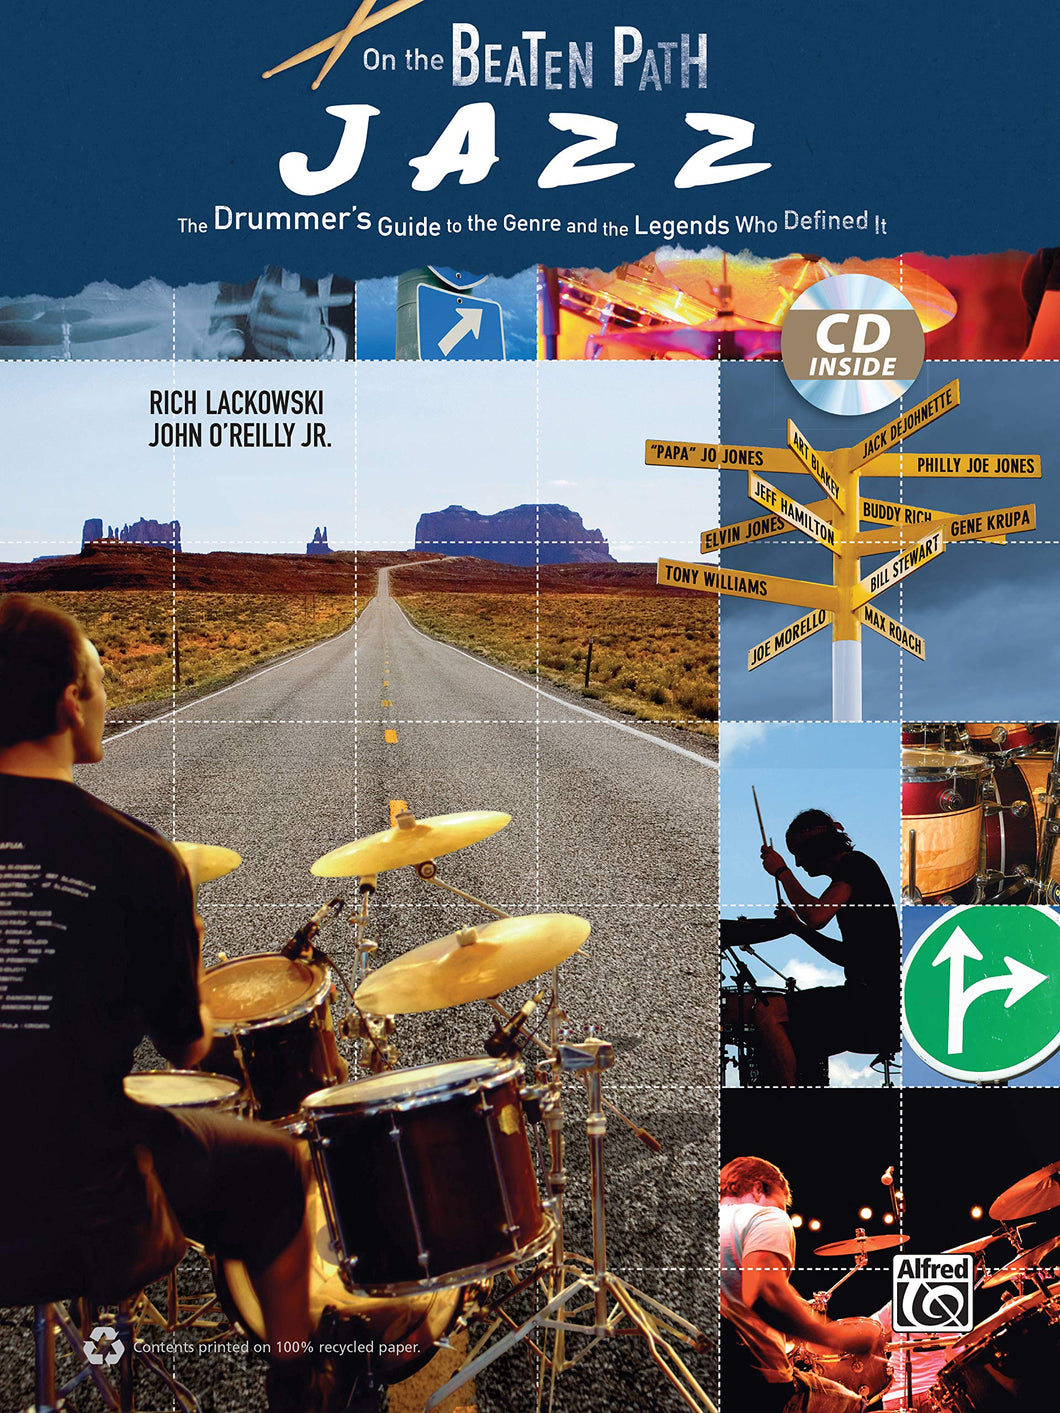 Take Five(Intermediate) - The Dave Brubeck Quartet - Collection of Drum Transcriptions / Drum Sheet Music - Alfred Music OBPJDGLDI